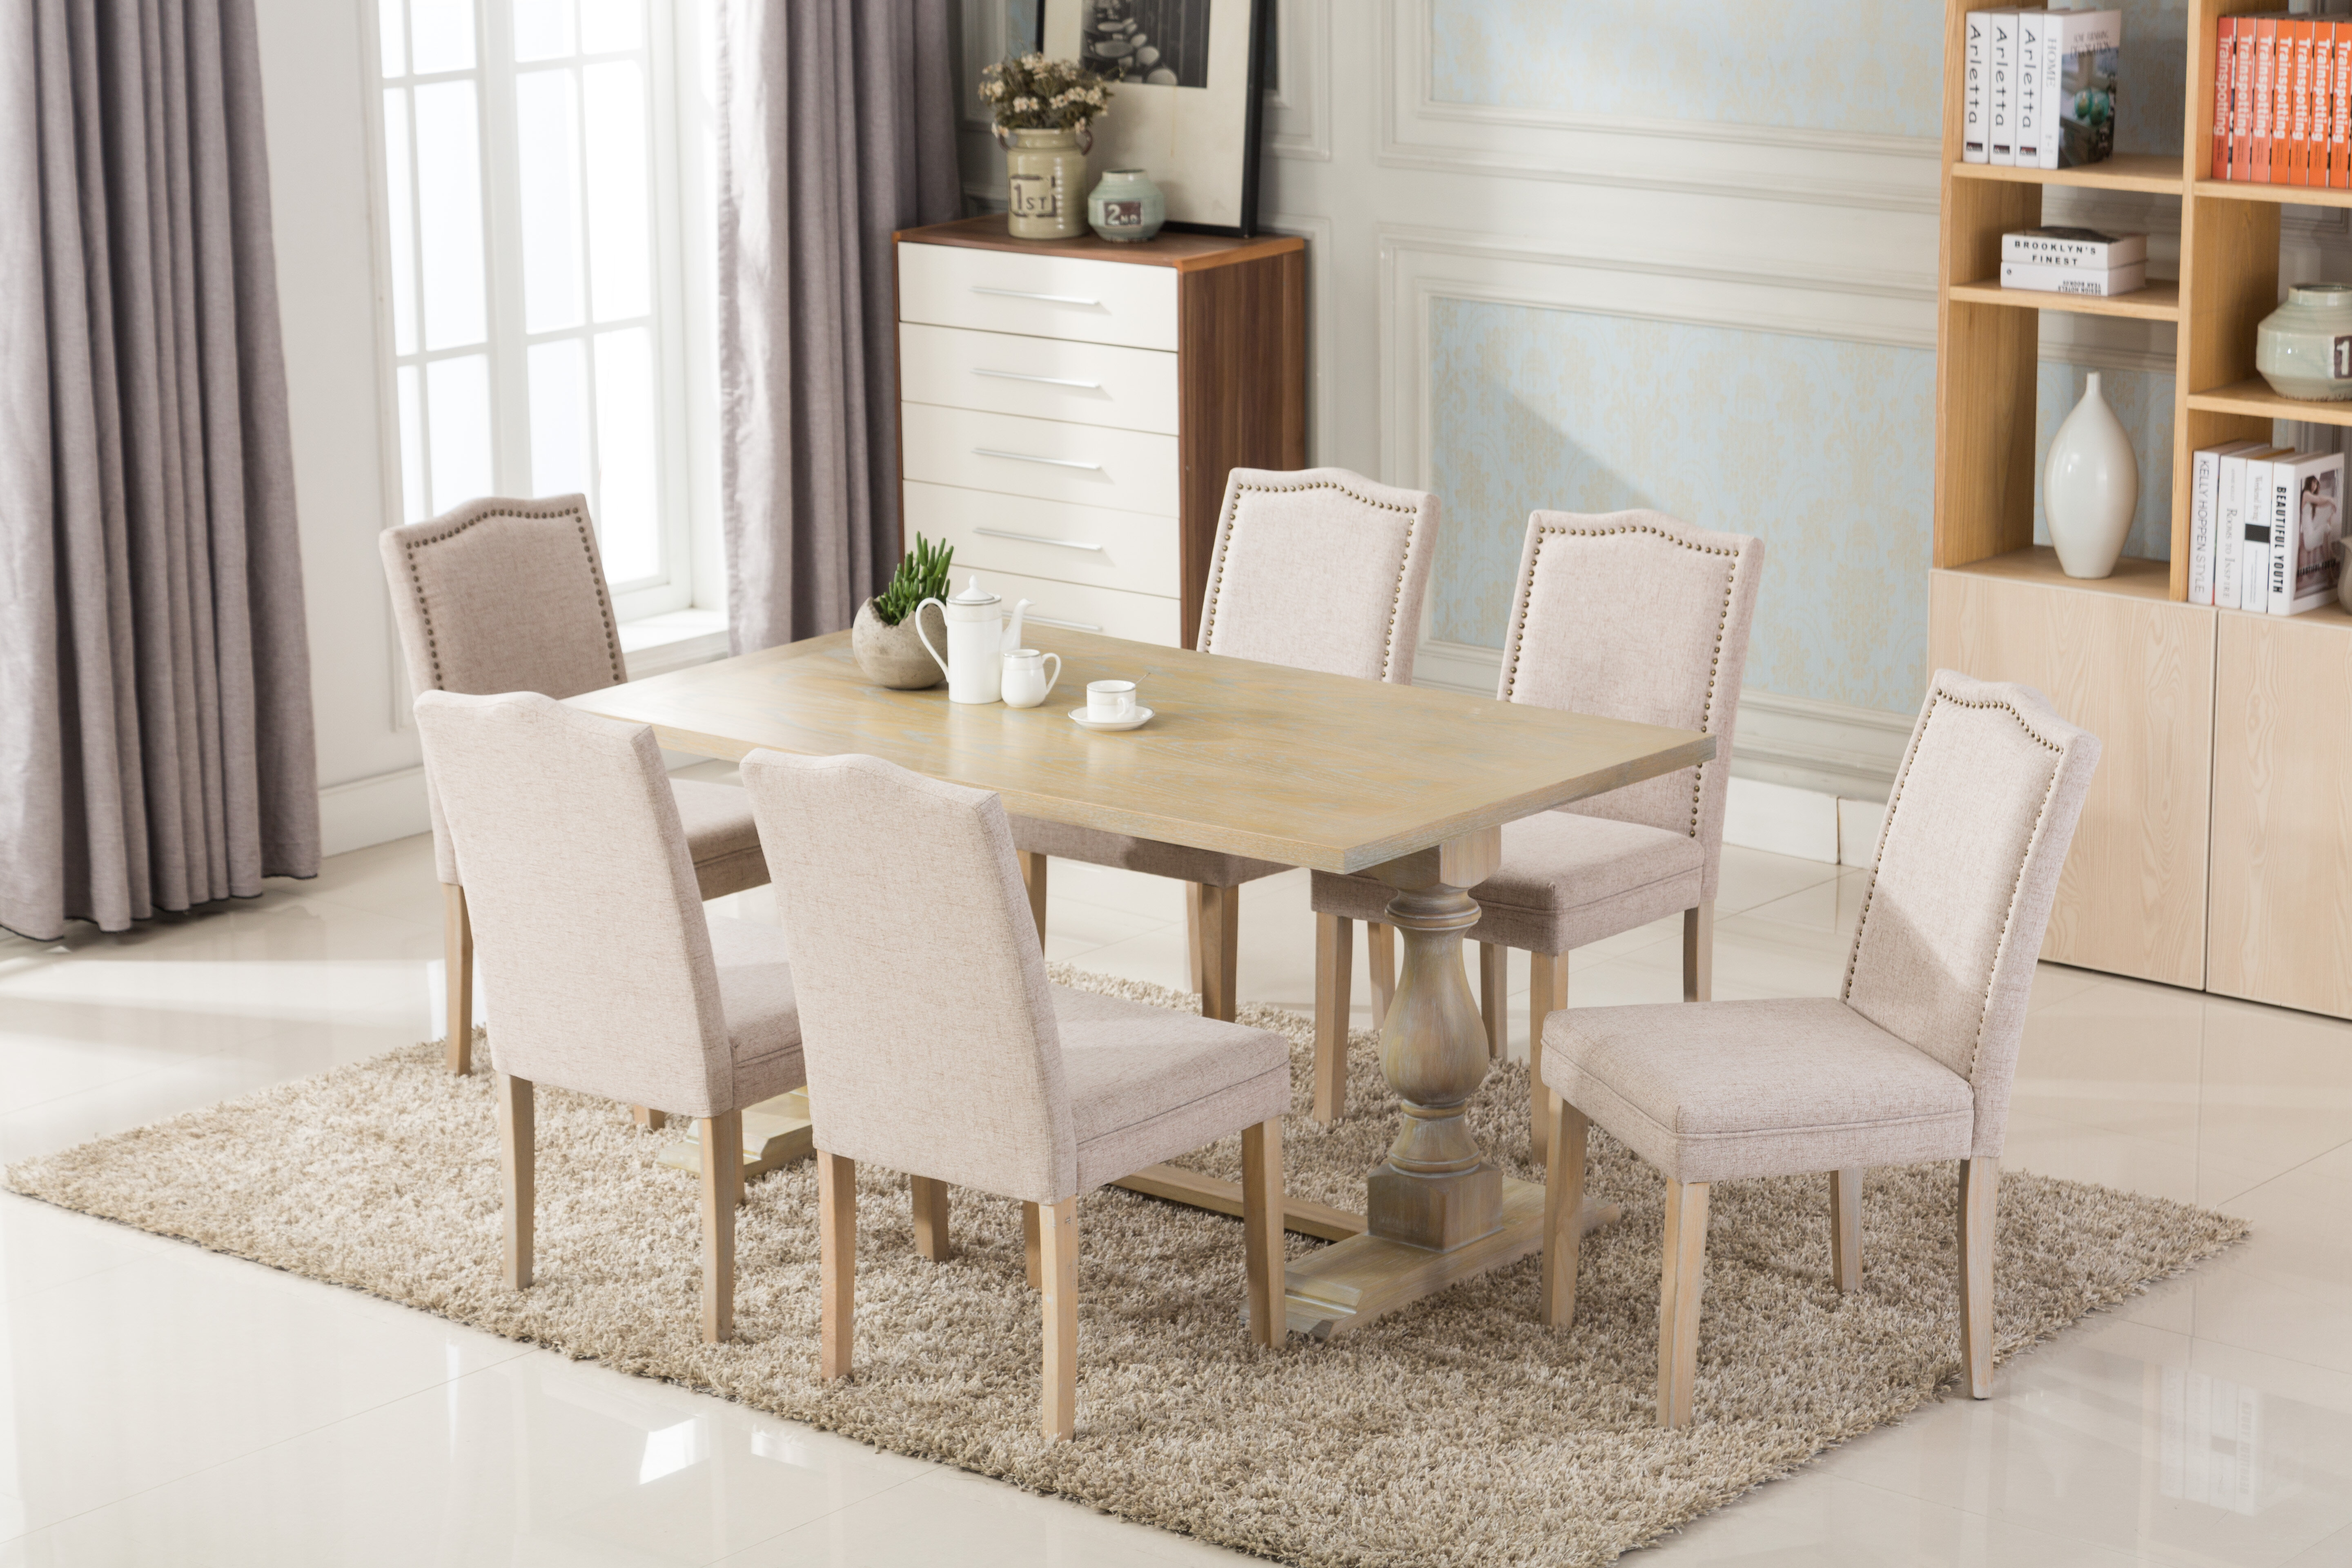 Merveilleux Patino Antique 7 Piece Dining Set